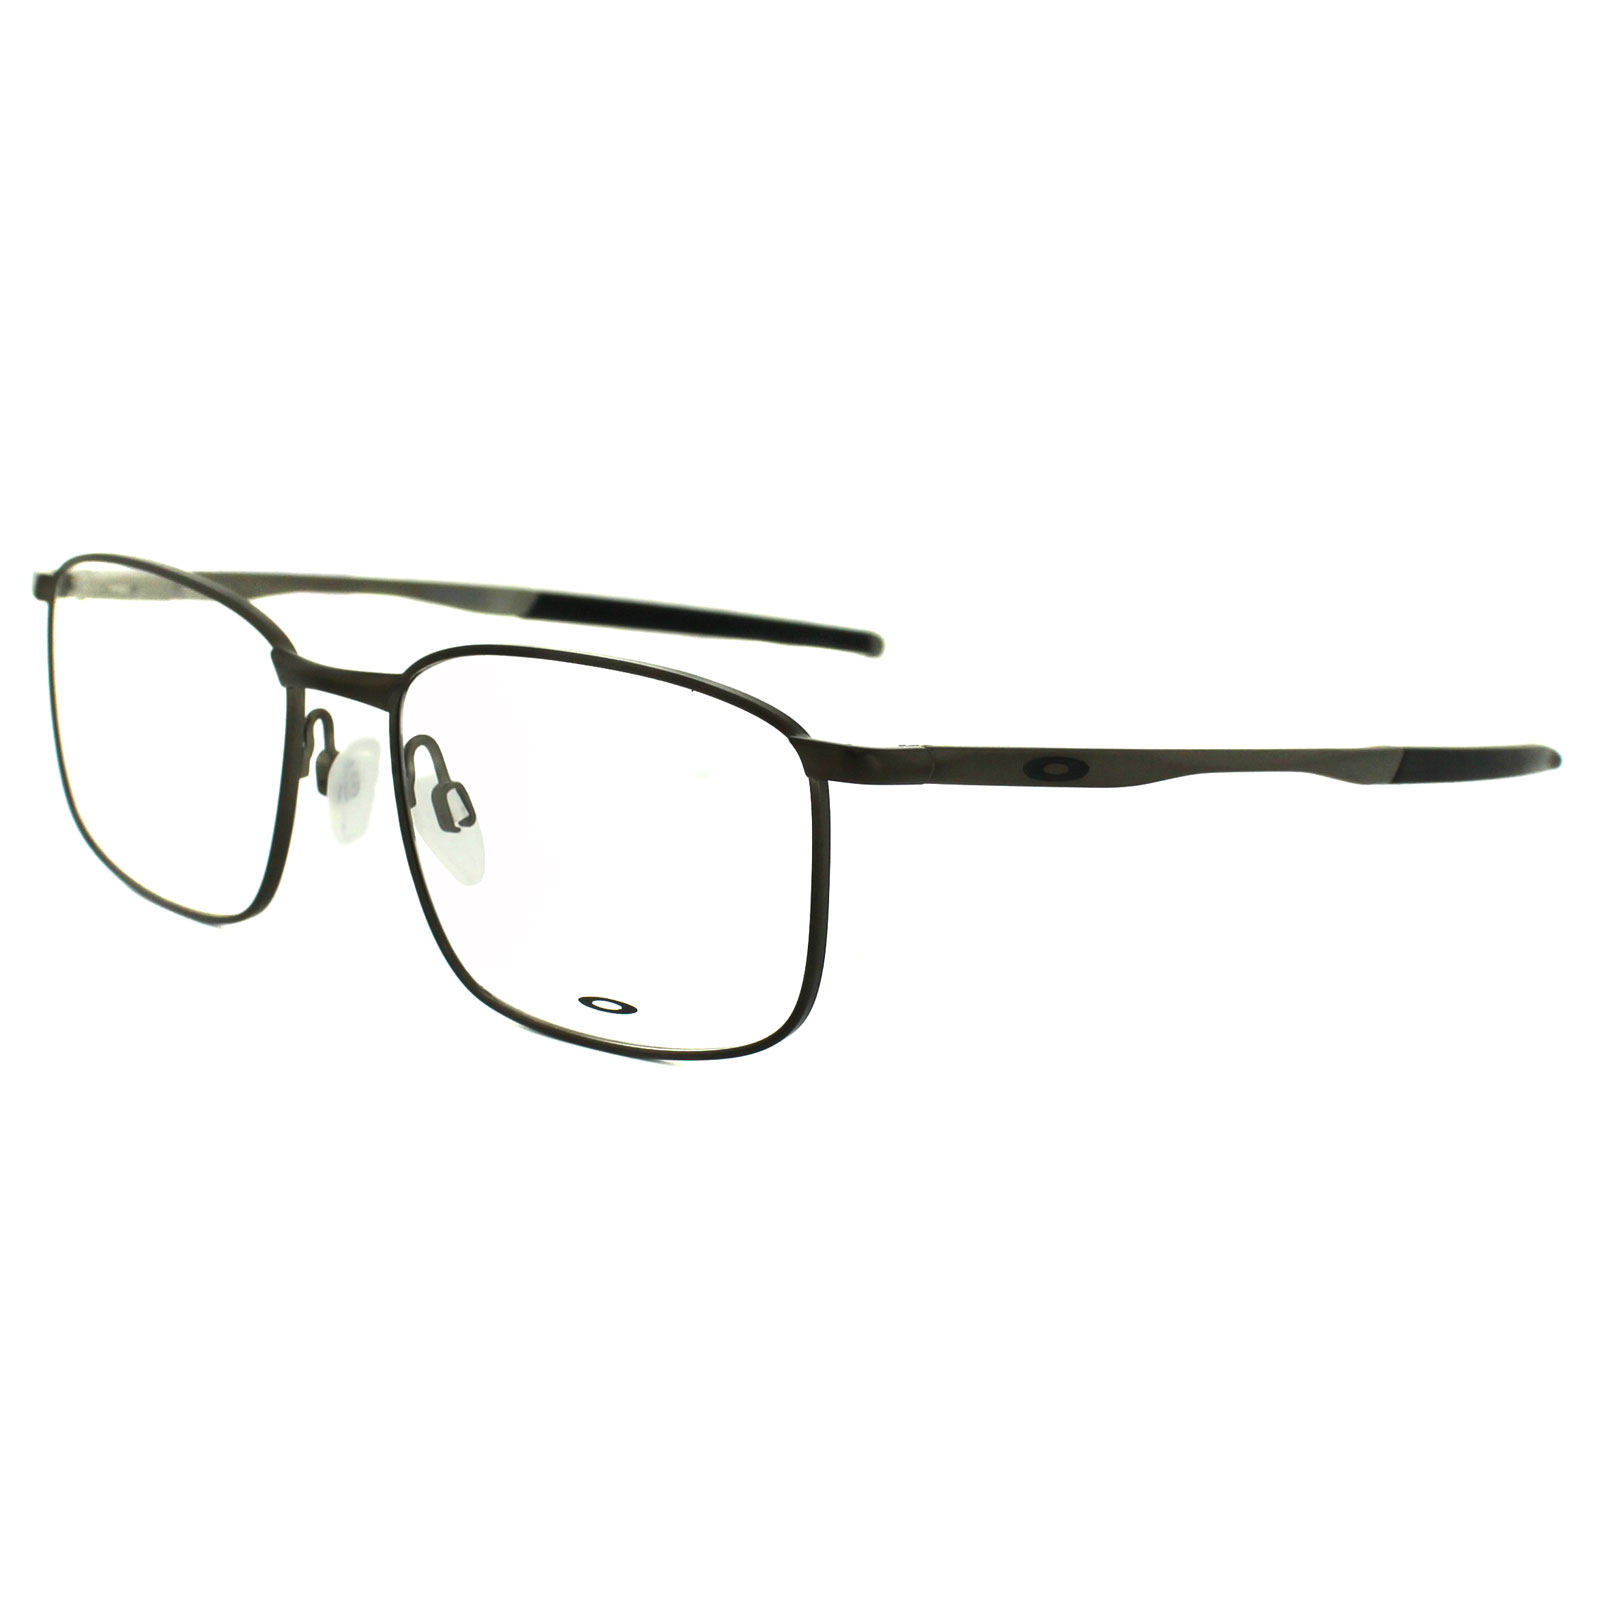 Cheap Oakley Taproom Glasses Frames - Discounted Sunglasses